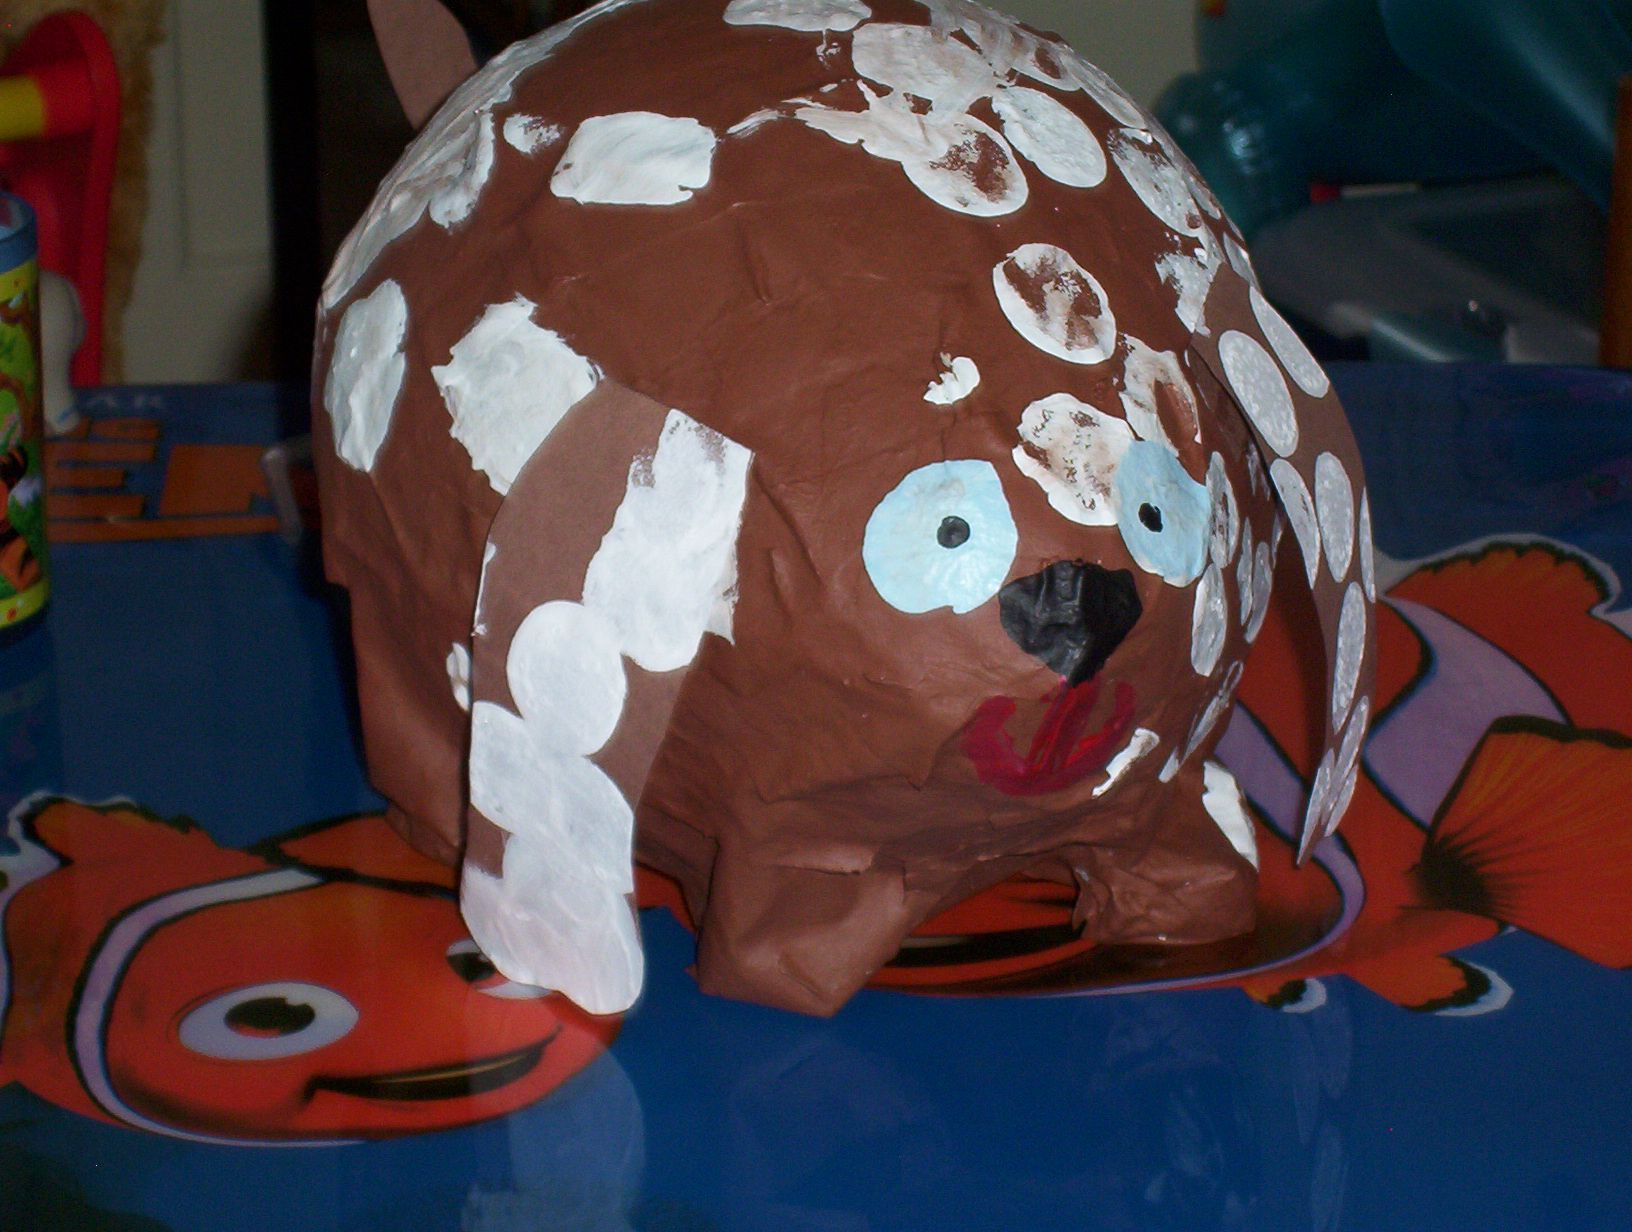 Paper Mache Dog Animals Stips Of News Paper Dipped In